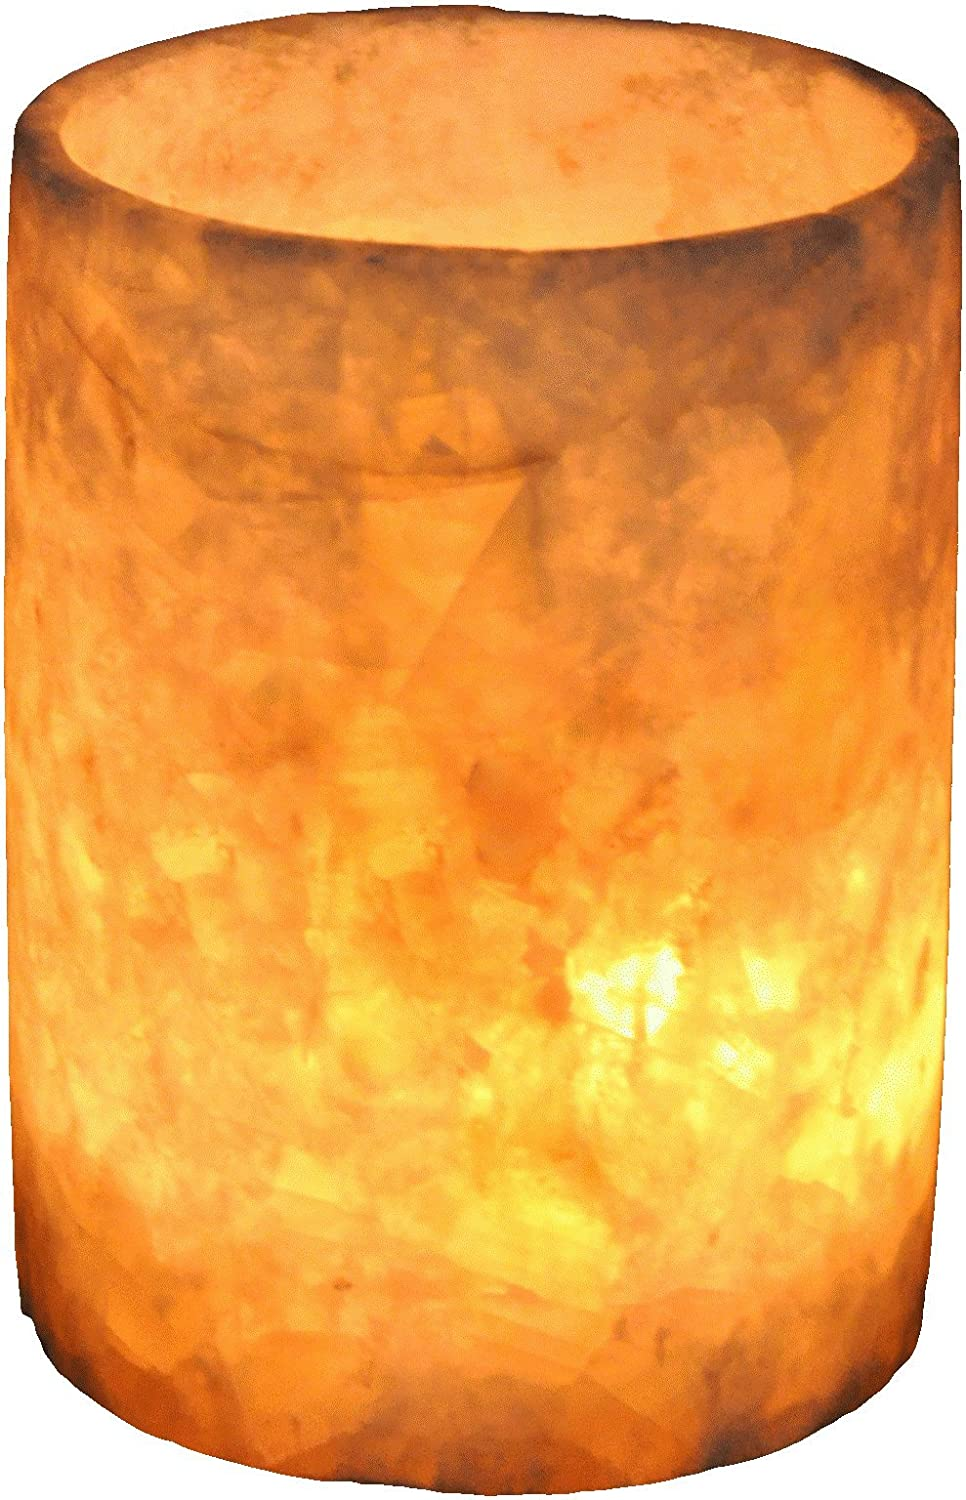 CraftsOfEgypt Single White Alabaster Candle Holder - Egyptian Tealight and Votive Candles Holders with Amber Glow for Home Décor - Natural Stone Soothing Tranquil